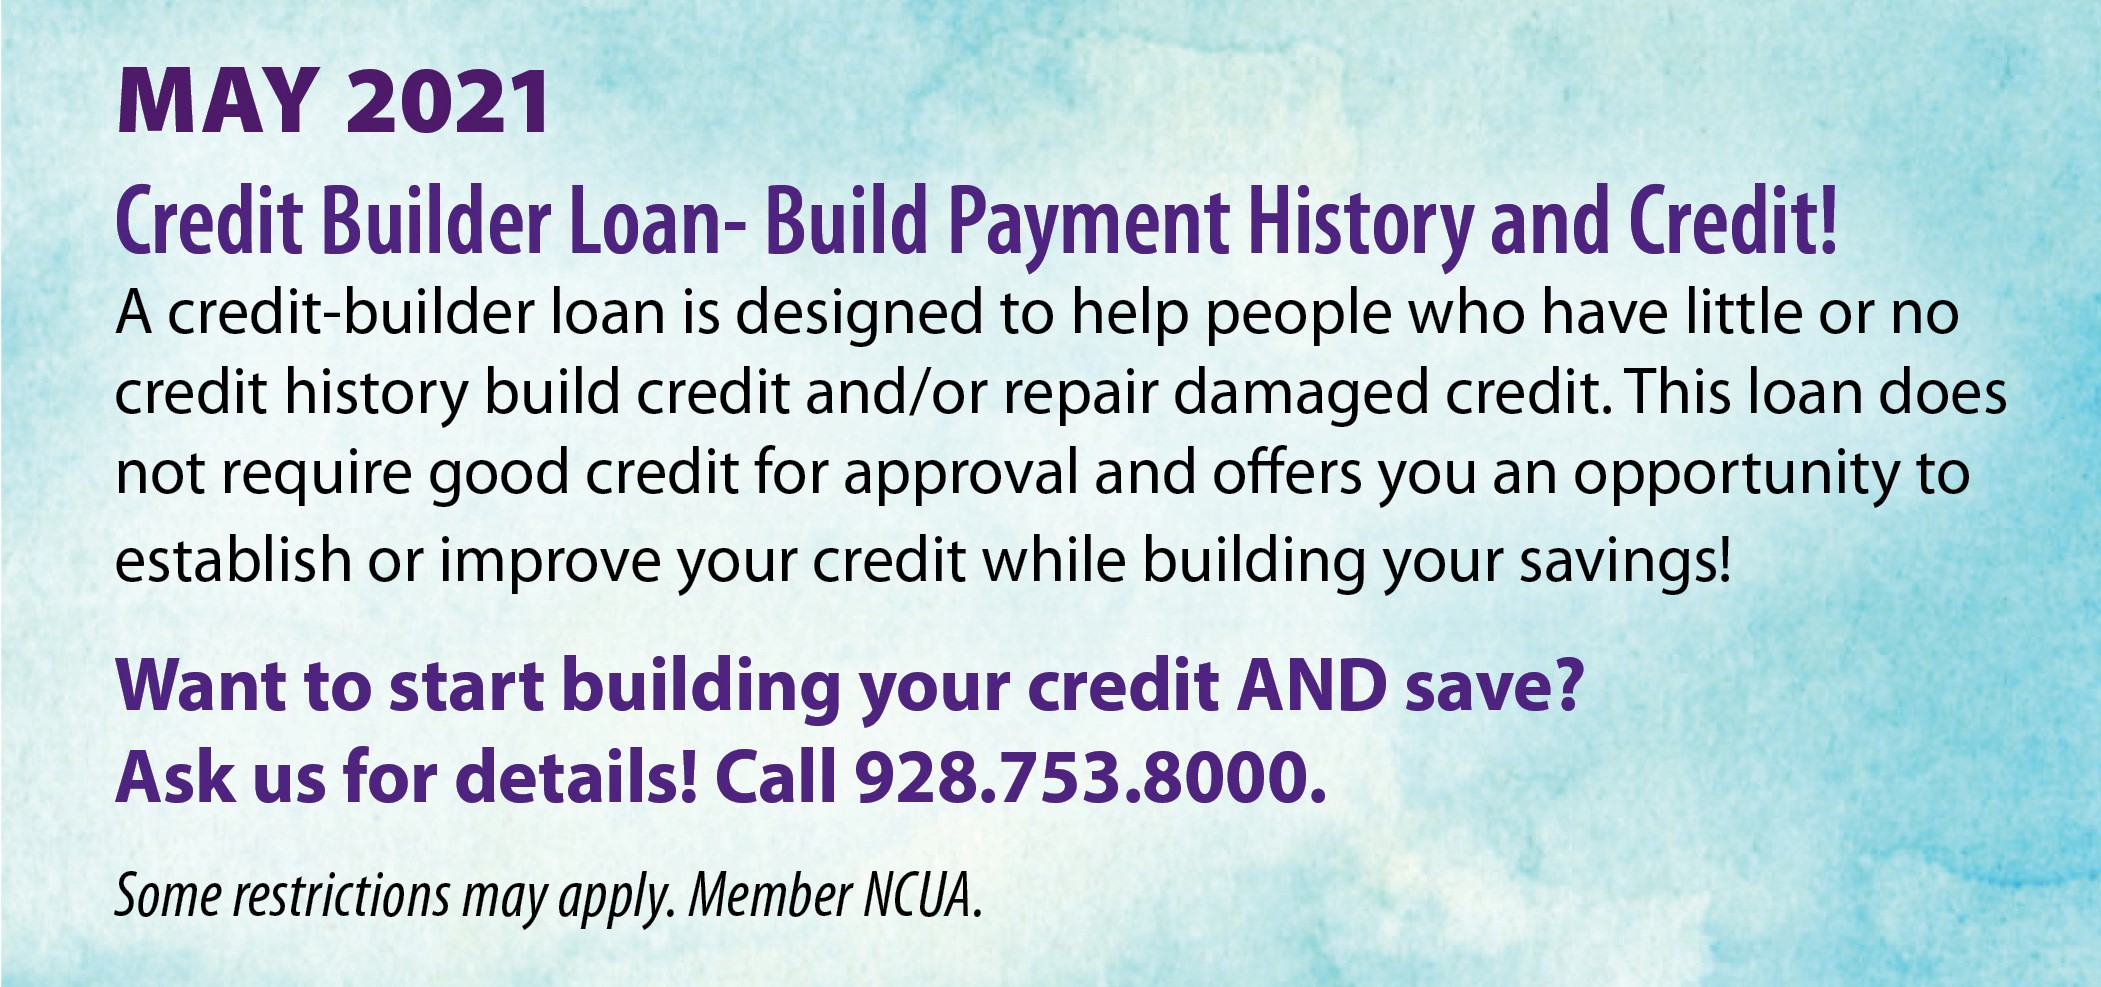 May - Credit Builder Loan, Build Payment History and Credit! A credit-builder loan is designed to help people who have little or no credit history build credit and/or repair damaged credit. This loan does not require good credit for approval and offers you an opportunity to establish or improve your credit while building your savings! Want to start building your credit AND save? Ask us for all of details! Call 928.753.8000. Some restrictions may apply. Member NCUA.